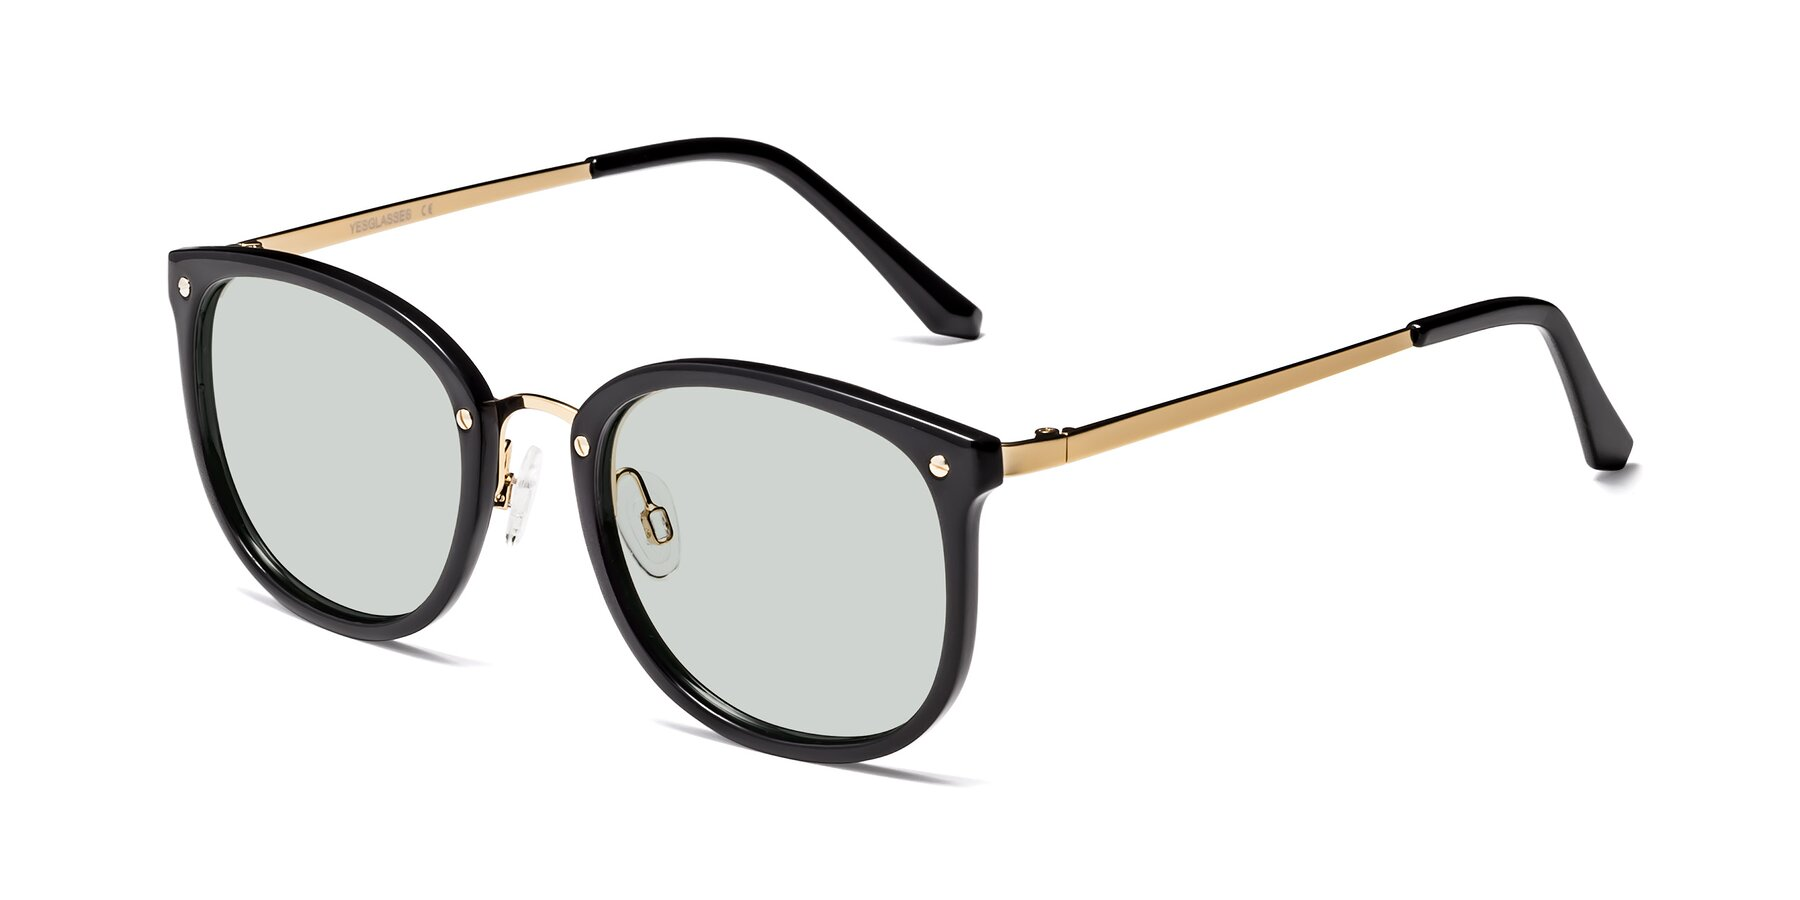 Angle of Timeless in Black-Gold with Light Green Tinted Lenses